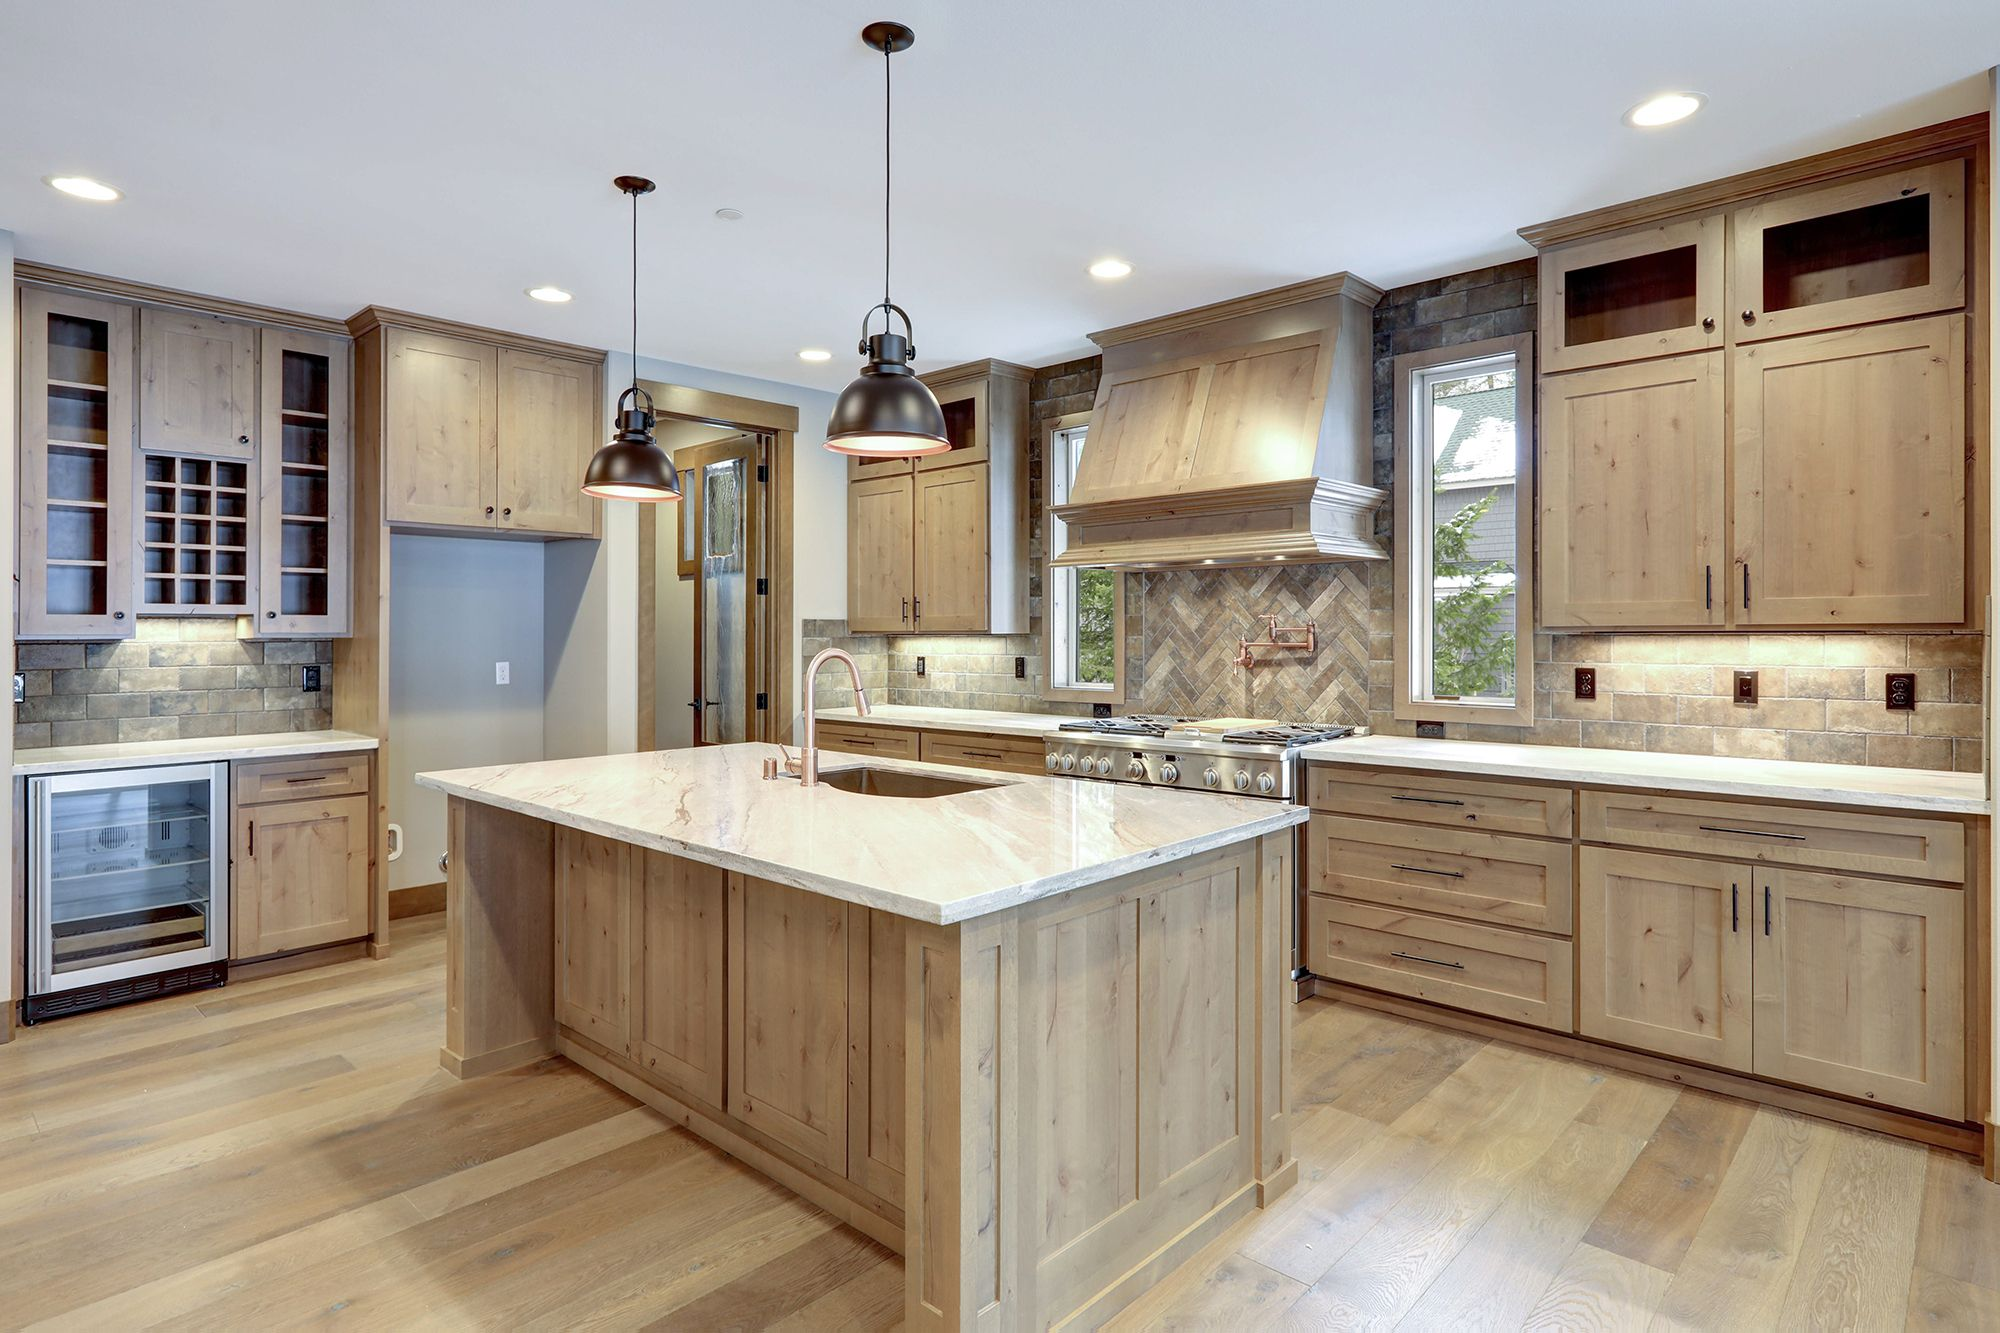 Pin By Great Nw Homes On Kitchens By Gnw Knotty Alder Cabinets Alder Cabinets Diy Kitchen Cabinets Painting